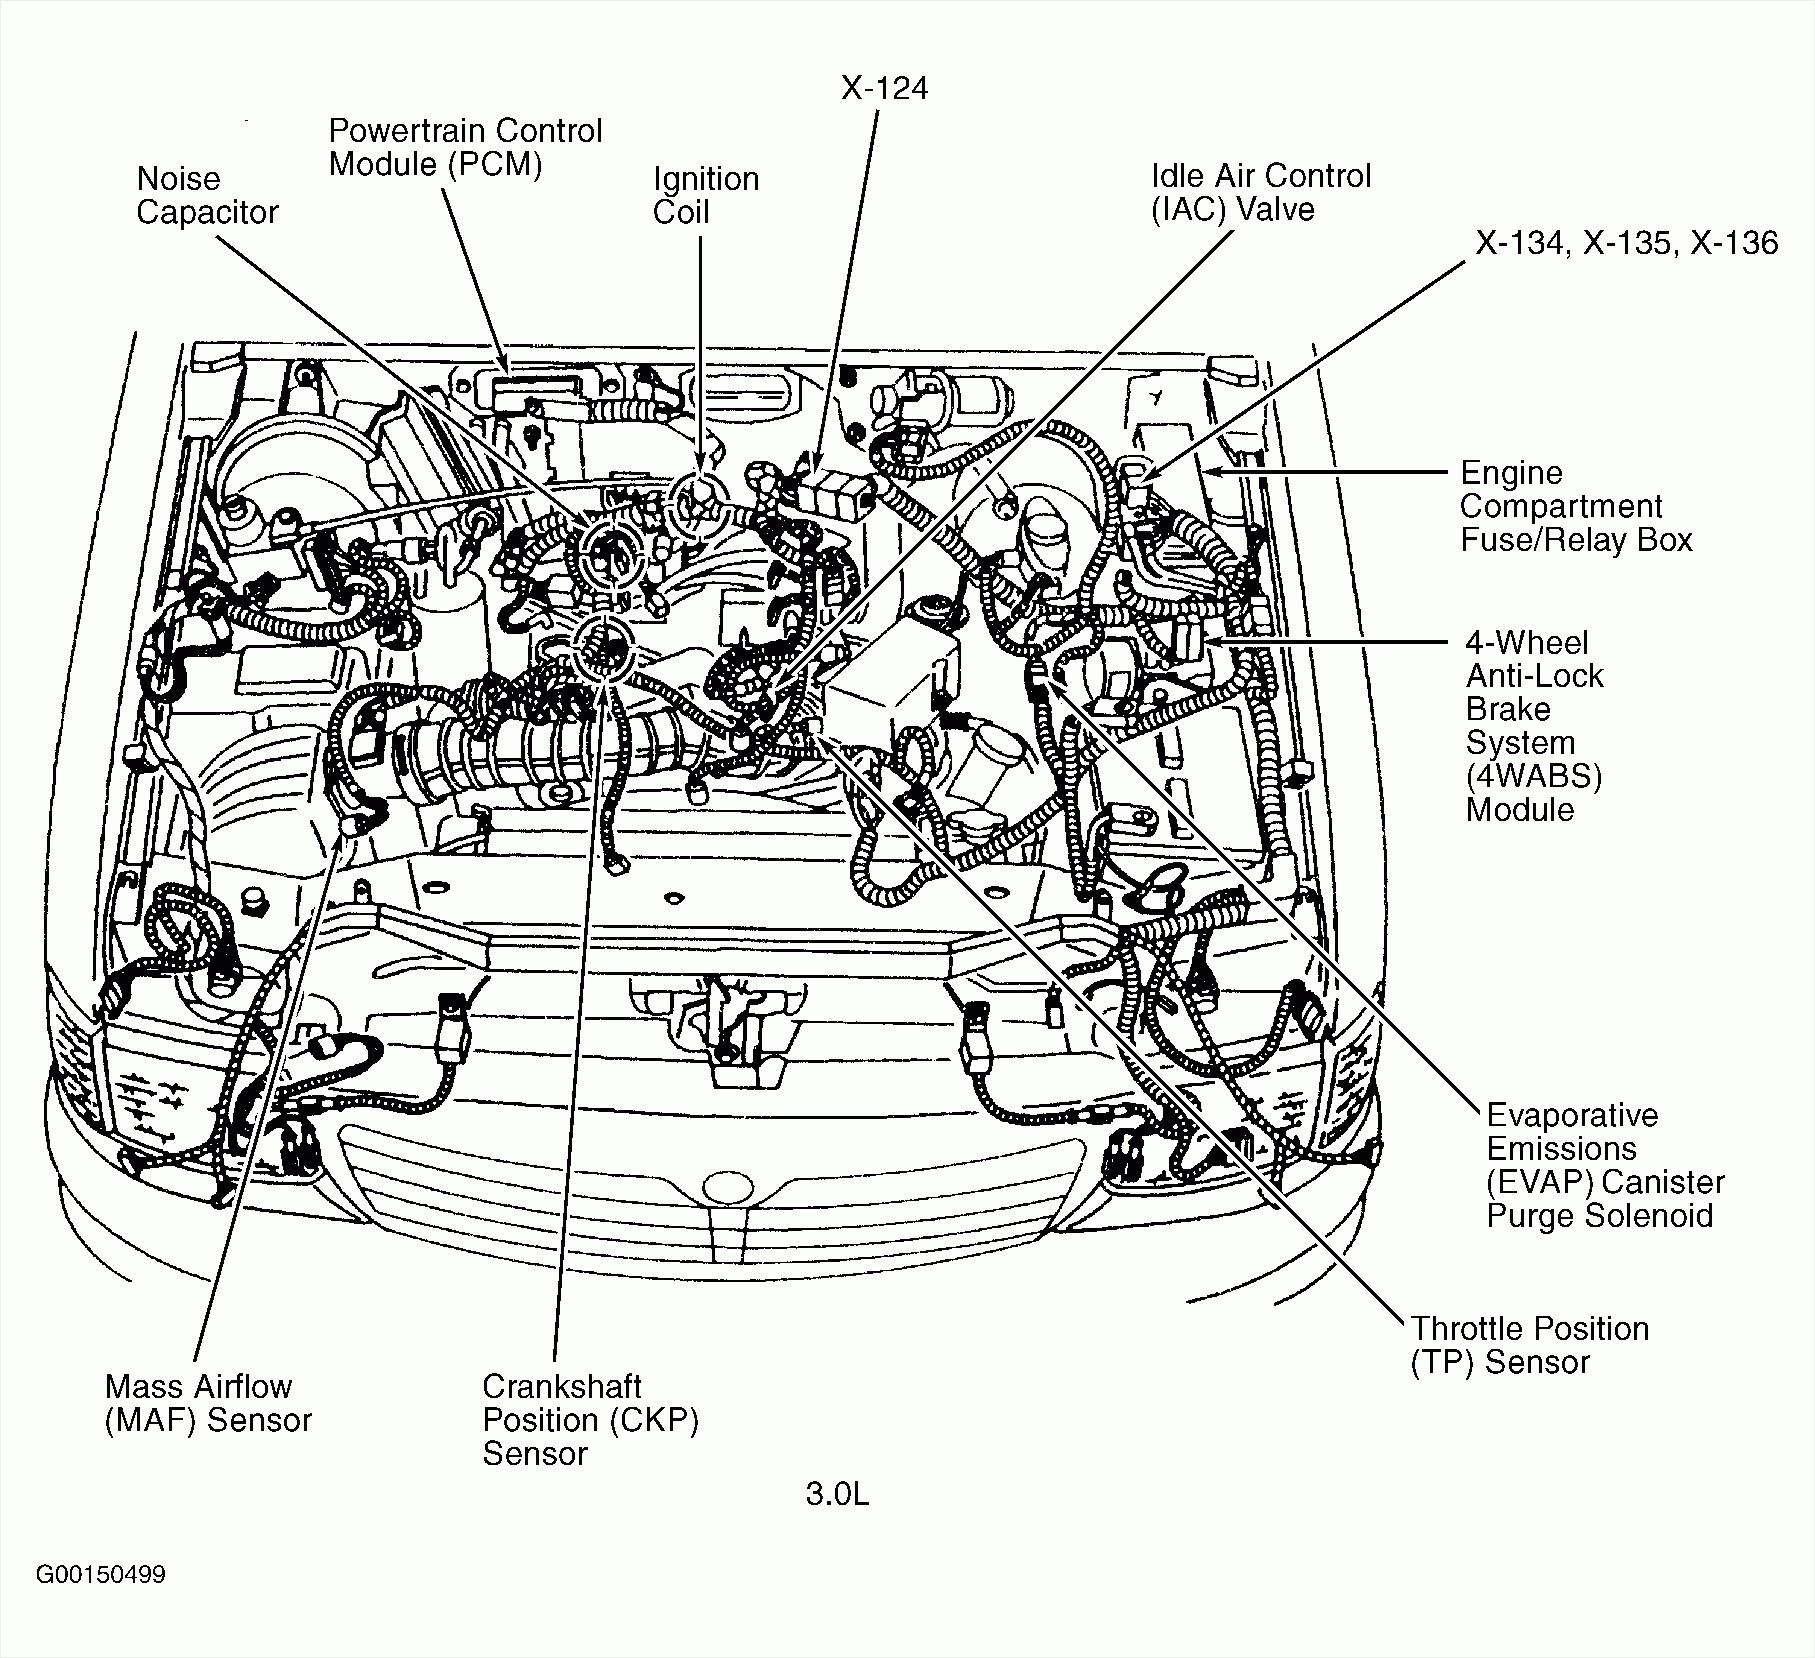 1993 Mazda 626 Engine Diagram Wiring Diagram Source B Source B Sposamiora It